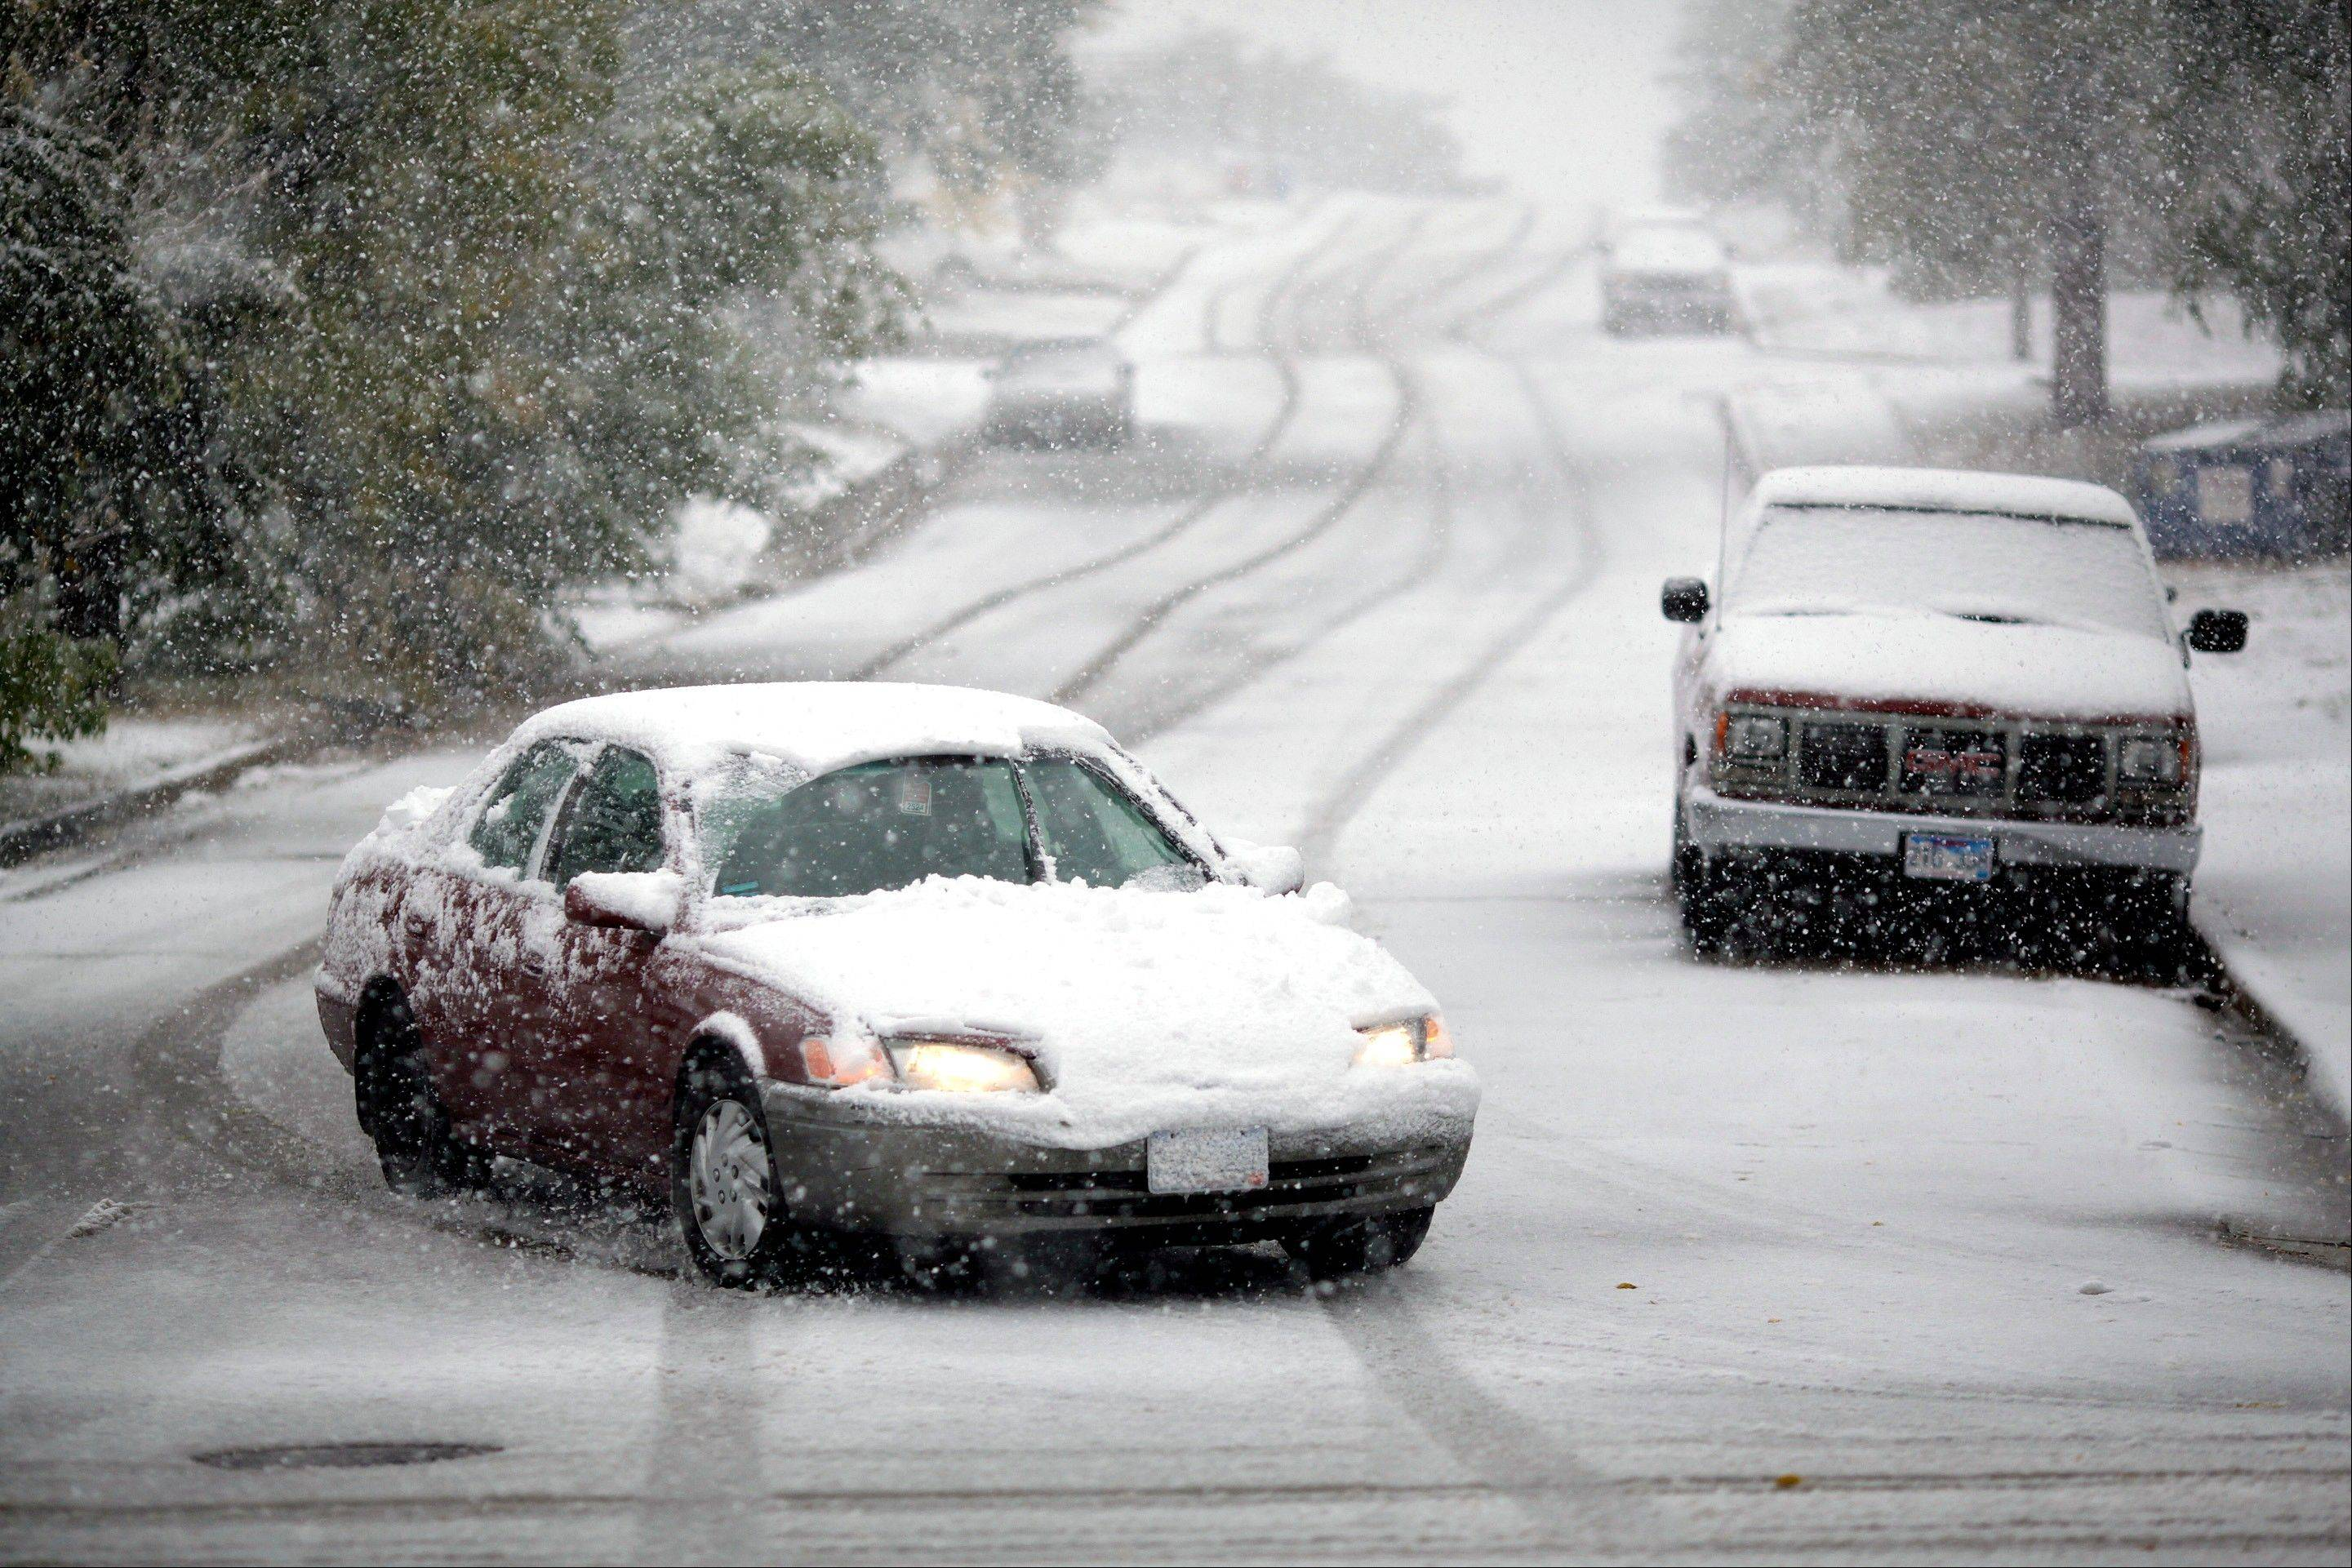 Motorists make their way down 6th Street during a snowstorm Friday, Oct. 4, 2013, in Rapid City, S.D. Blizzards rolled into parts of Wyoming and South Dakota on Friday, bringing the states to an unseasonably early wintery standstill by closing highways and schools.